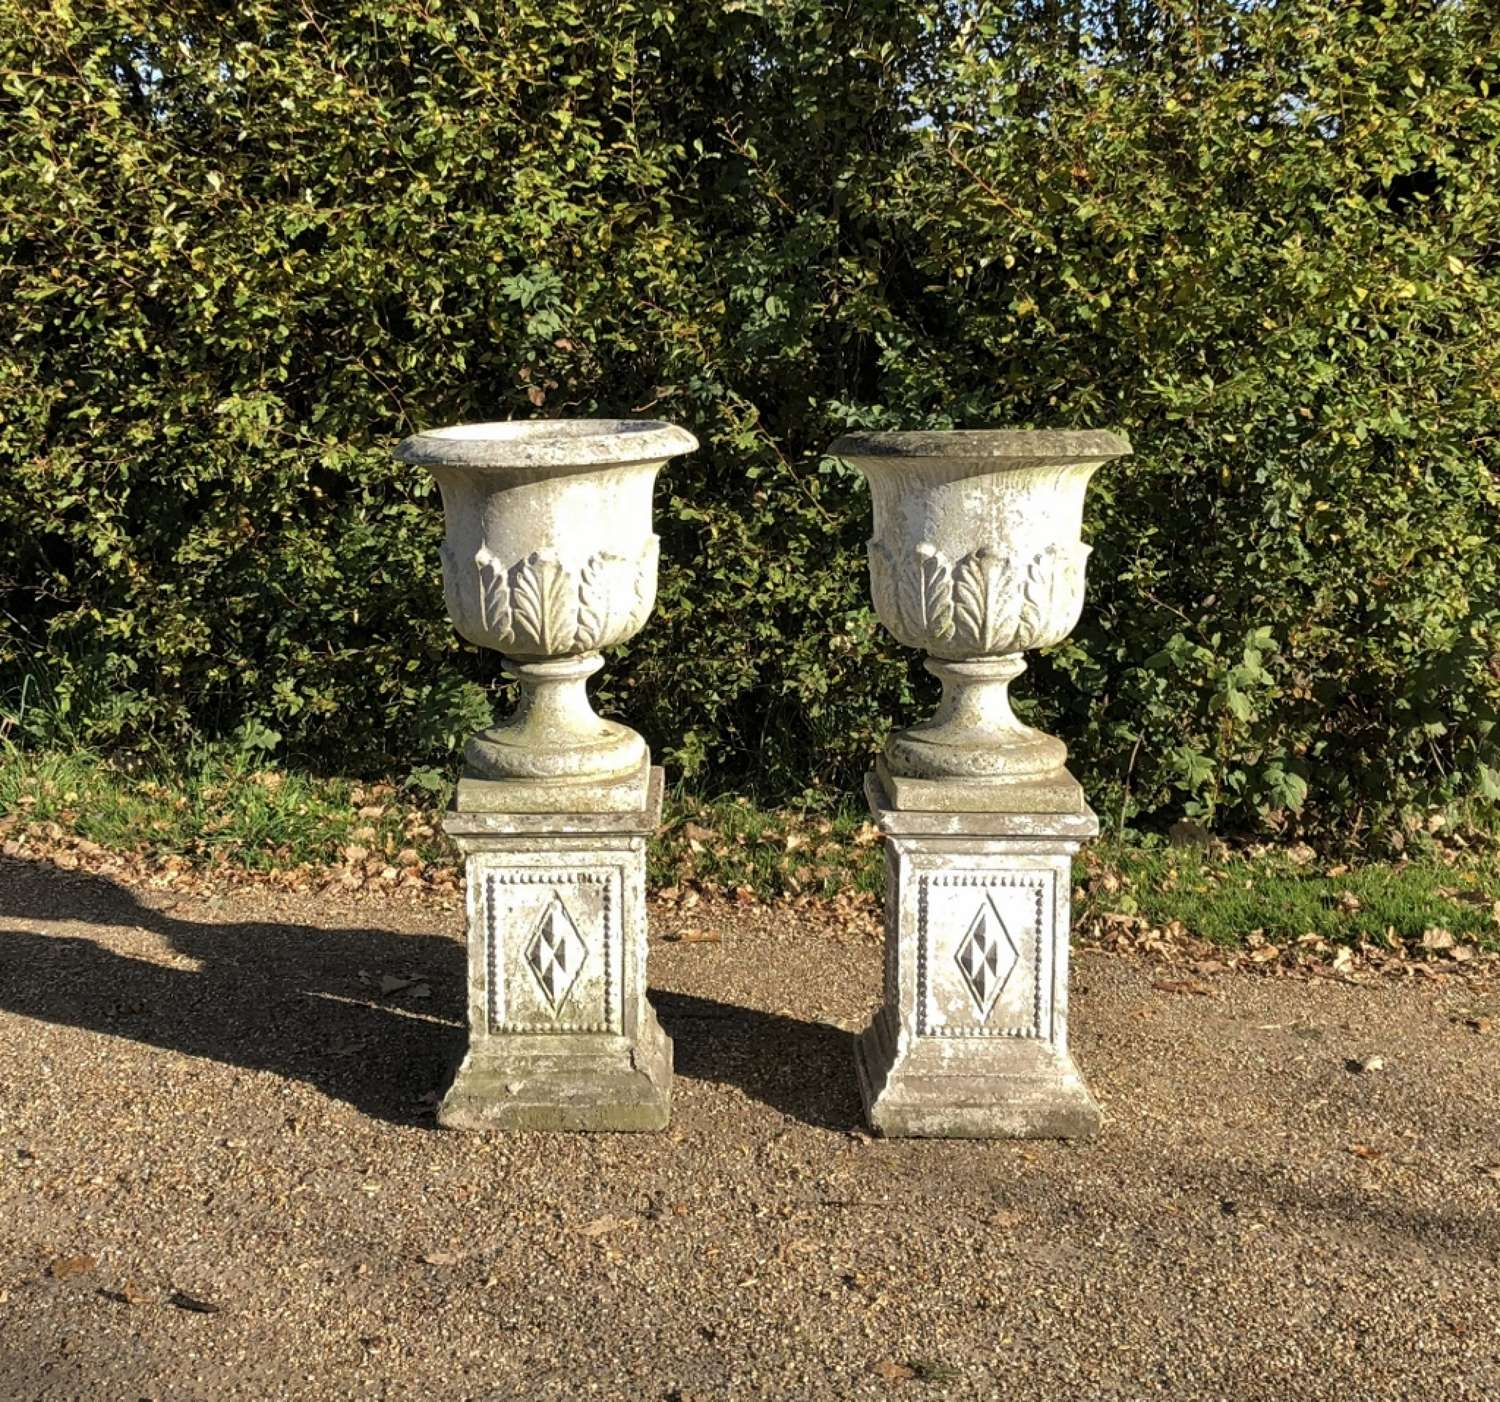 Pair of Leaf Urns on Pedestals